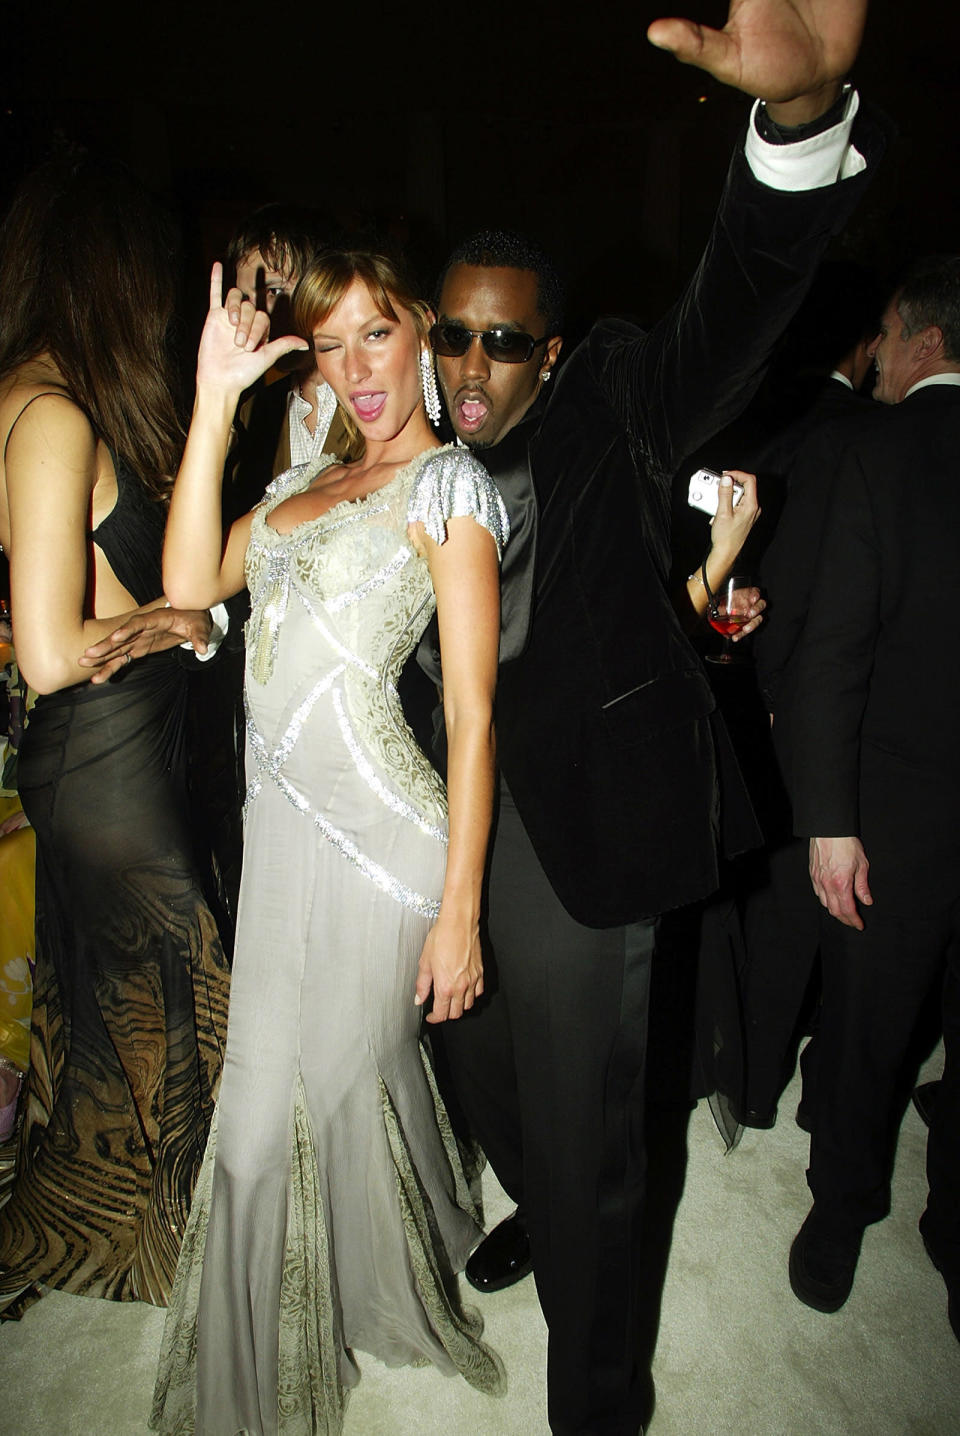 <p>Tracing back to the Met Gala with P. Diddy in 2003, it seems like Gisele's pose, in one form or another, has been with her through it all. (Photo: Getty Images) </p>